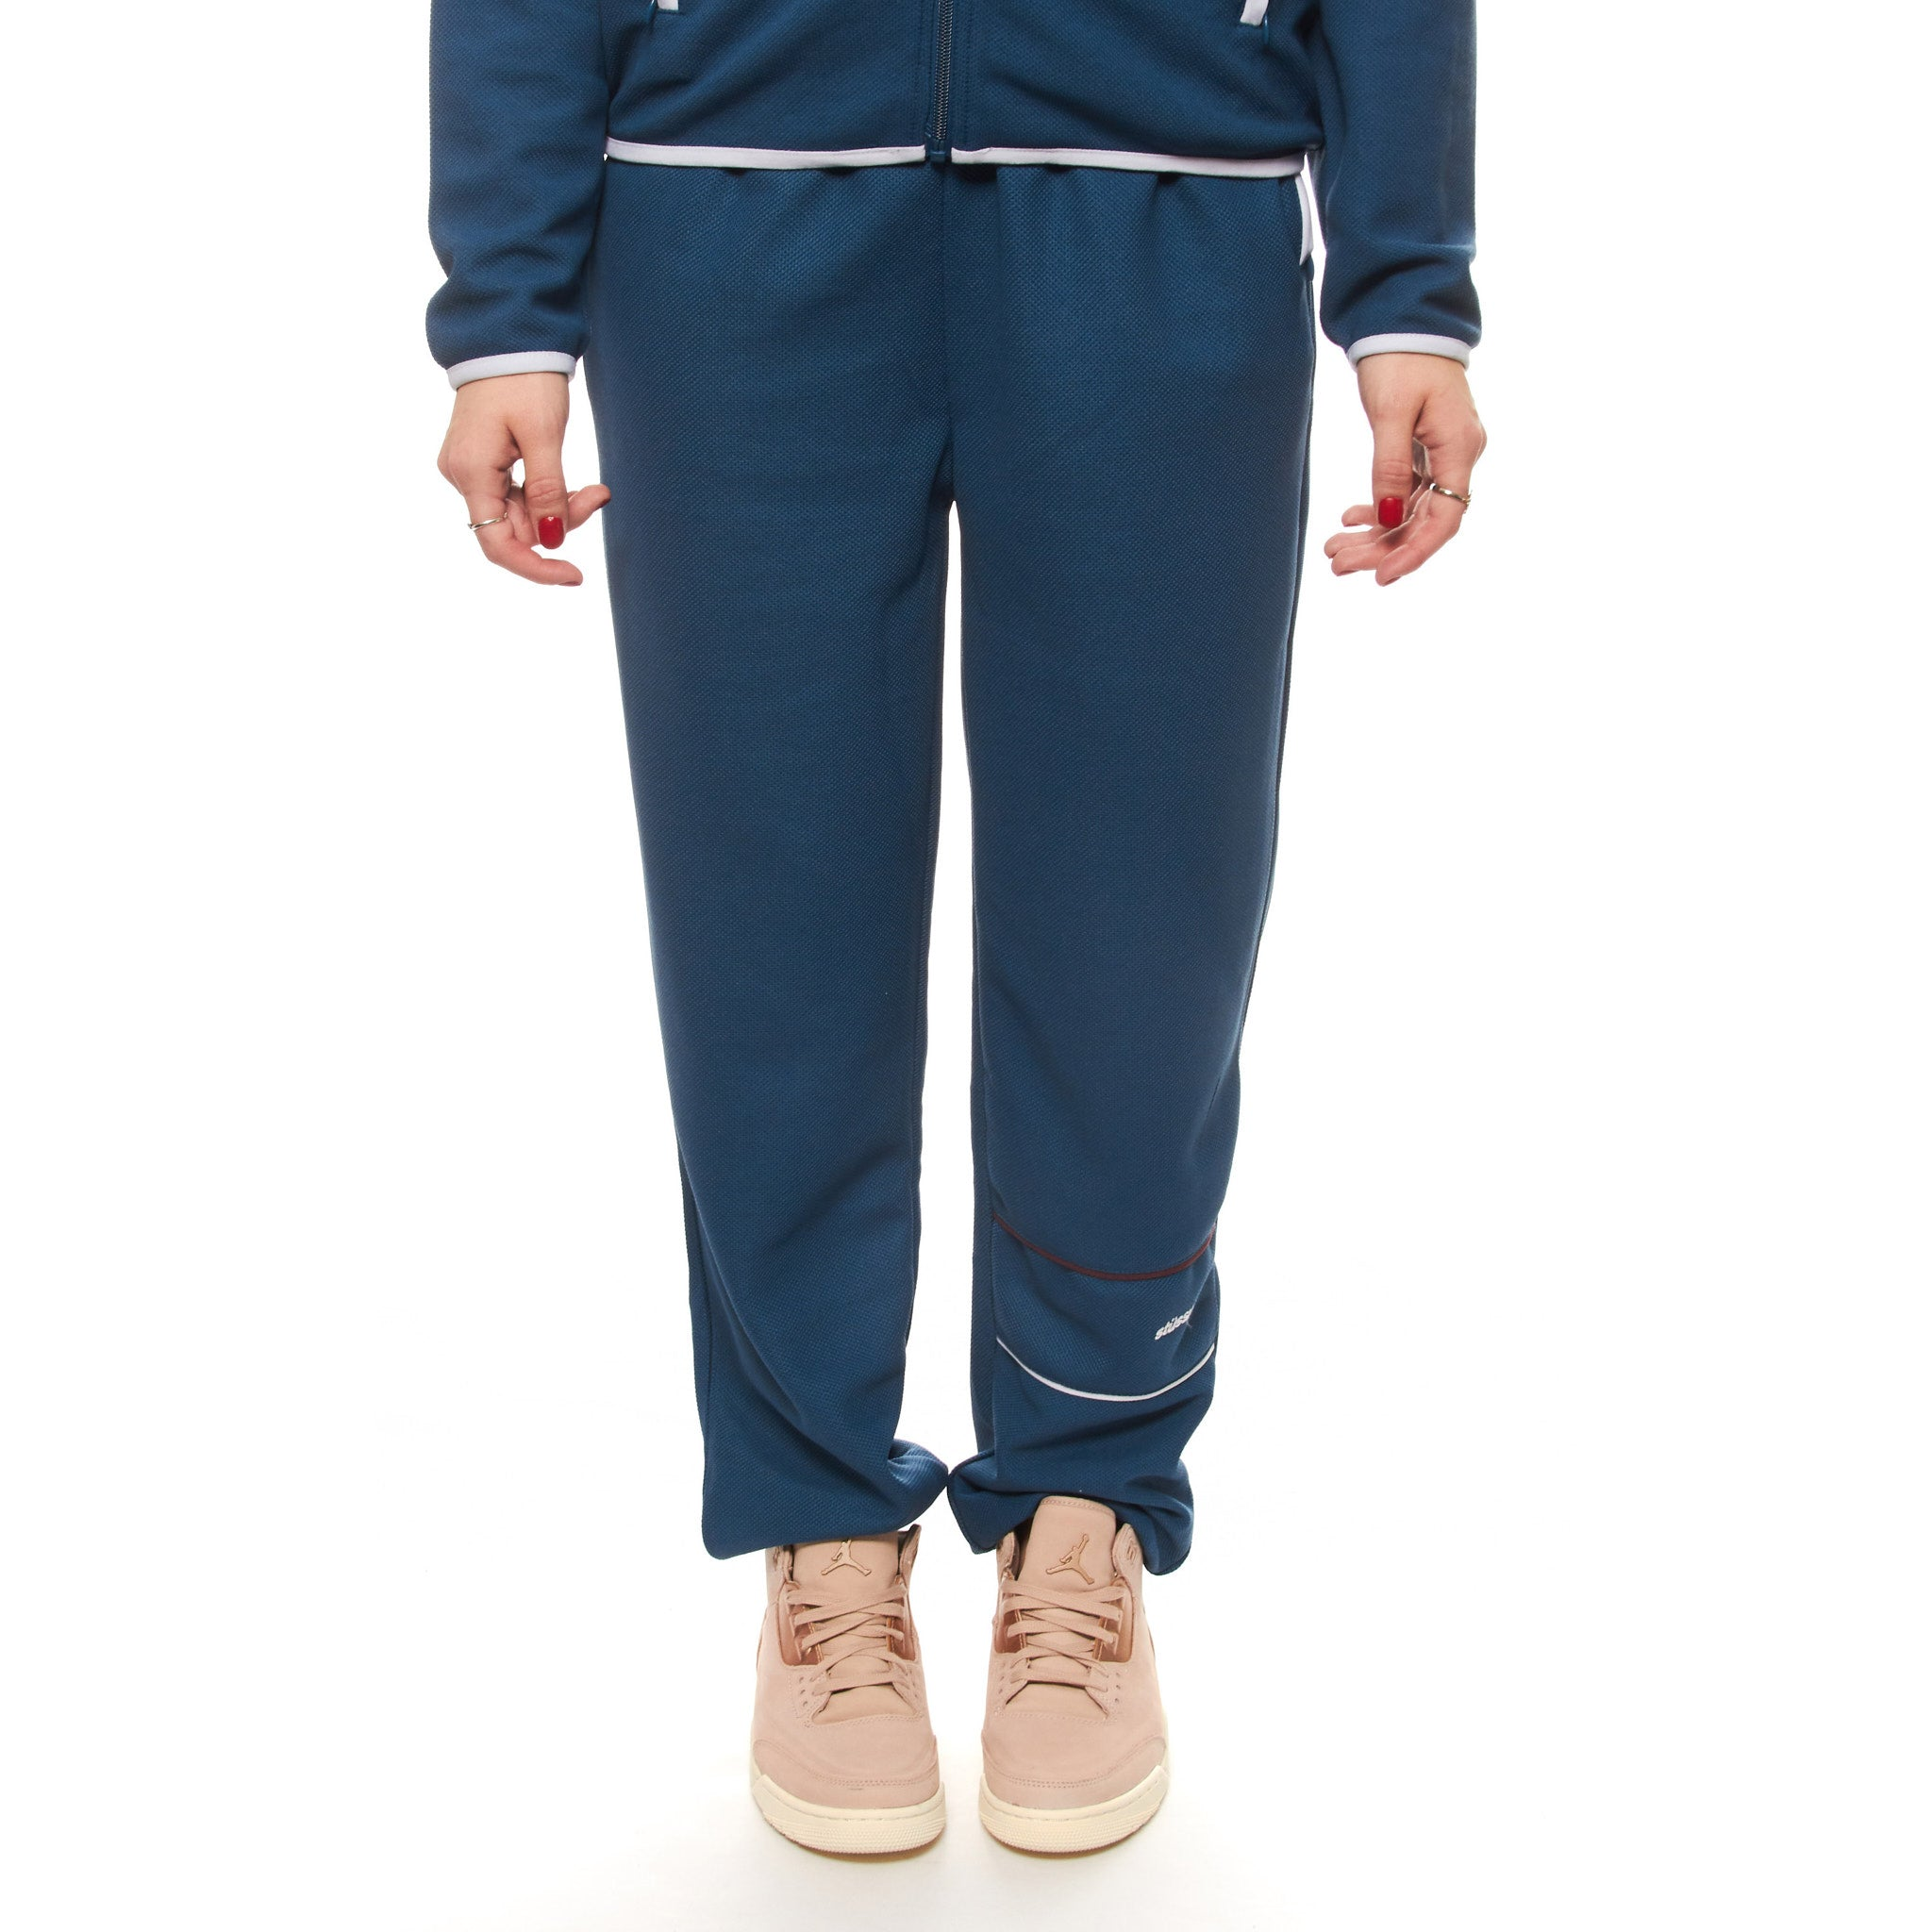 Pax Track Pant